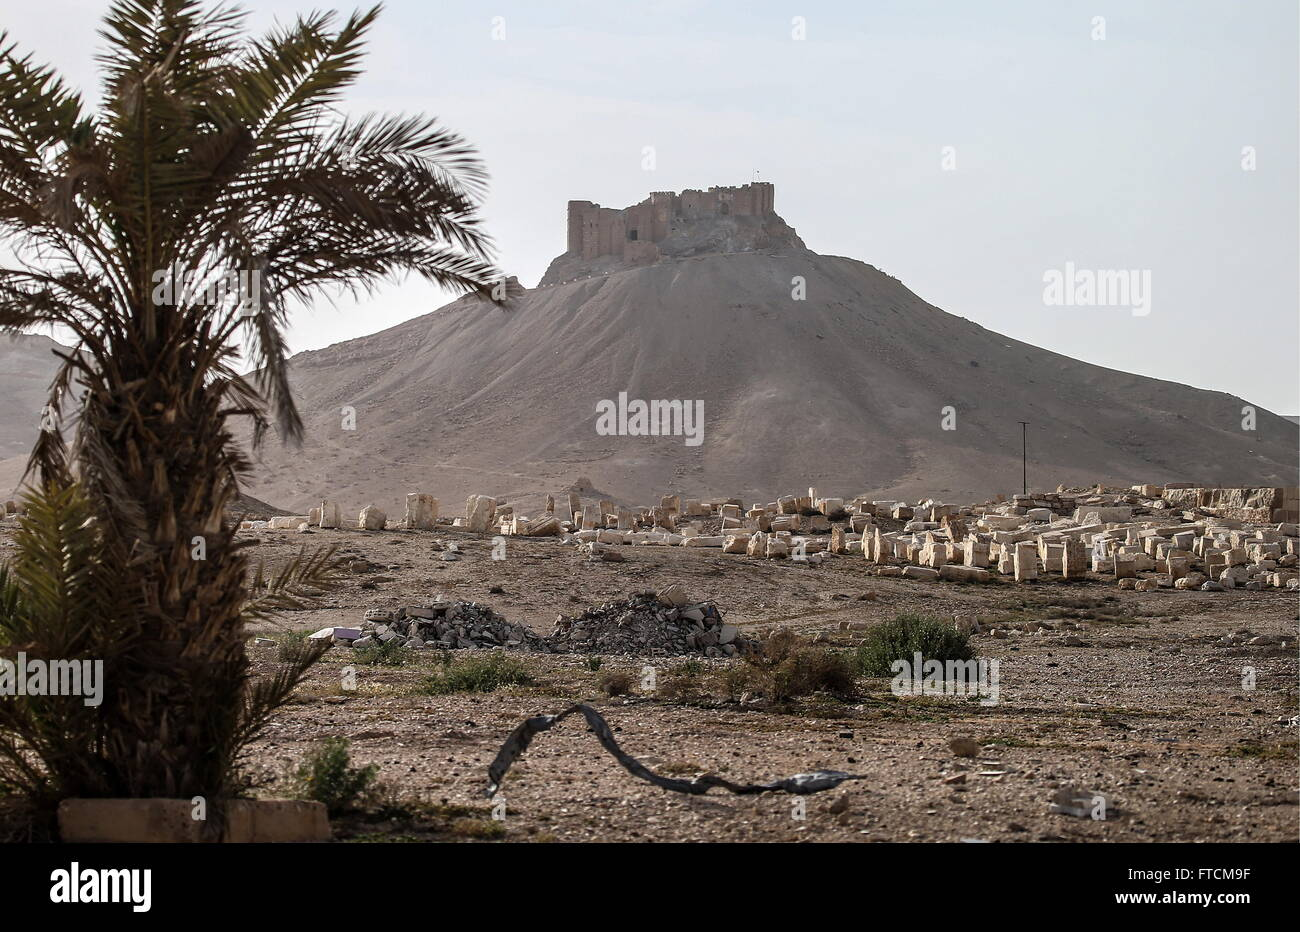 Palmyra, Syria. 27th March, 2016. Ruins in Palmyra, a UNESCO world heritage site, with Fakhr al-Din al-Maani Citadel - Stock Image